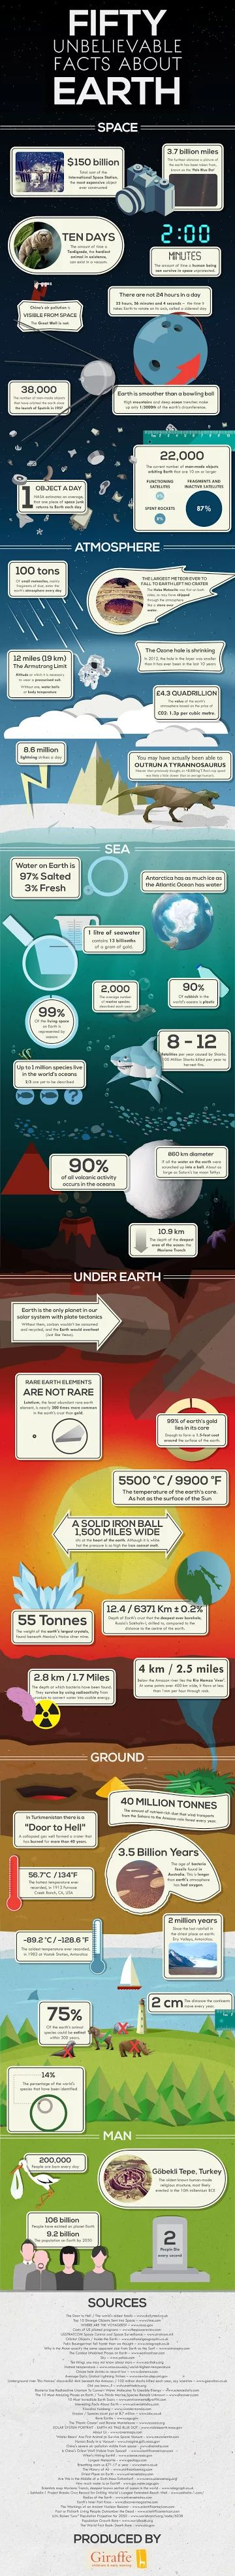 50-facts-about-earth3 (1)